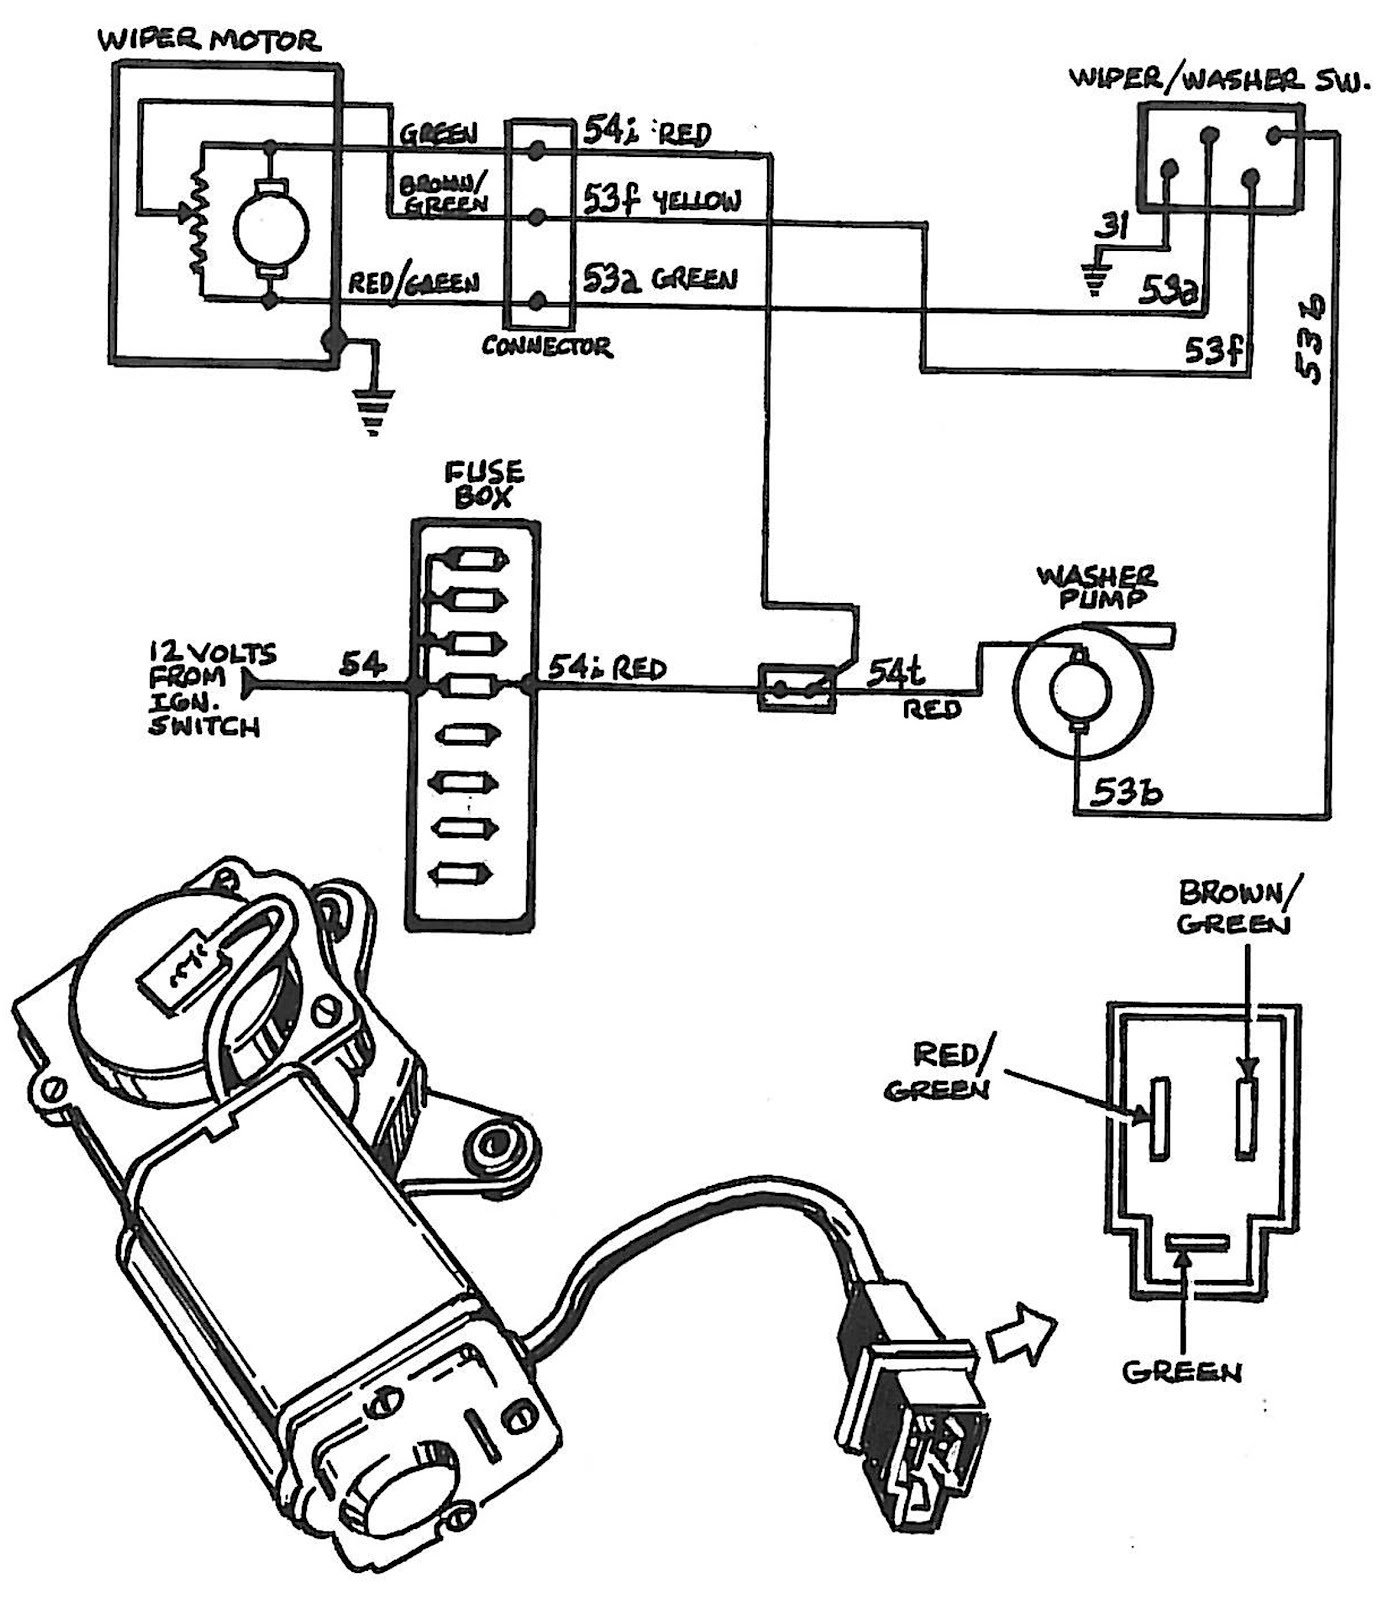 1995 f150 engine colored diagram wiring schematic schematic diagram 1995 F350 Wiring Diagram 1995 f150 engine colored diagram wiring schematic wiring diagram 1995 camry wiring schematic 1995 f150 engine